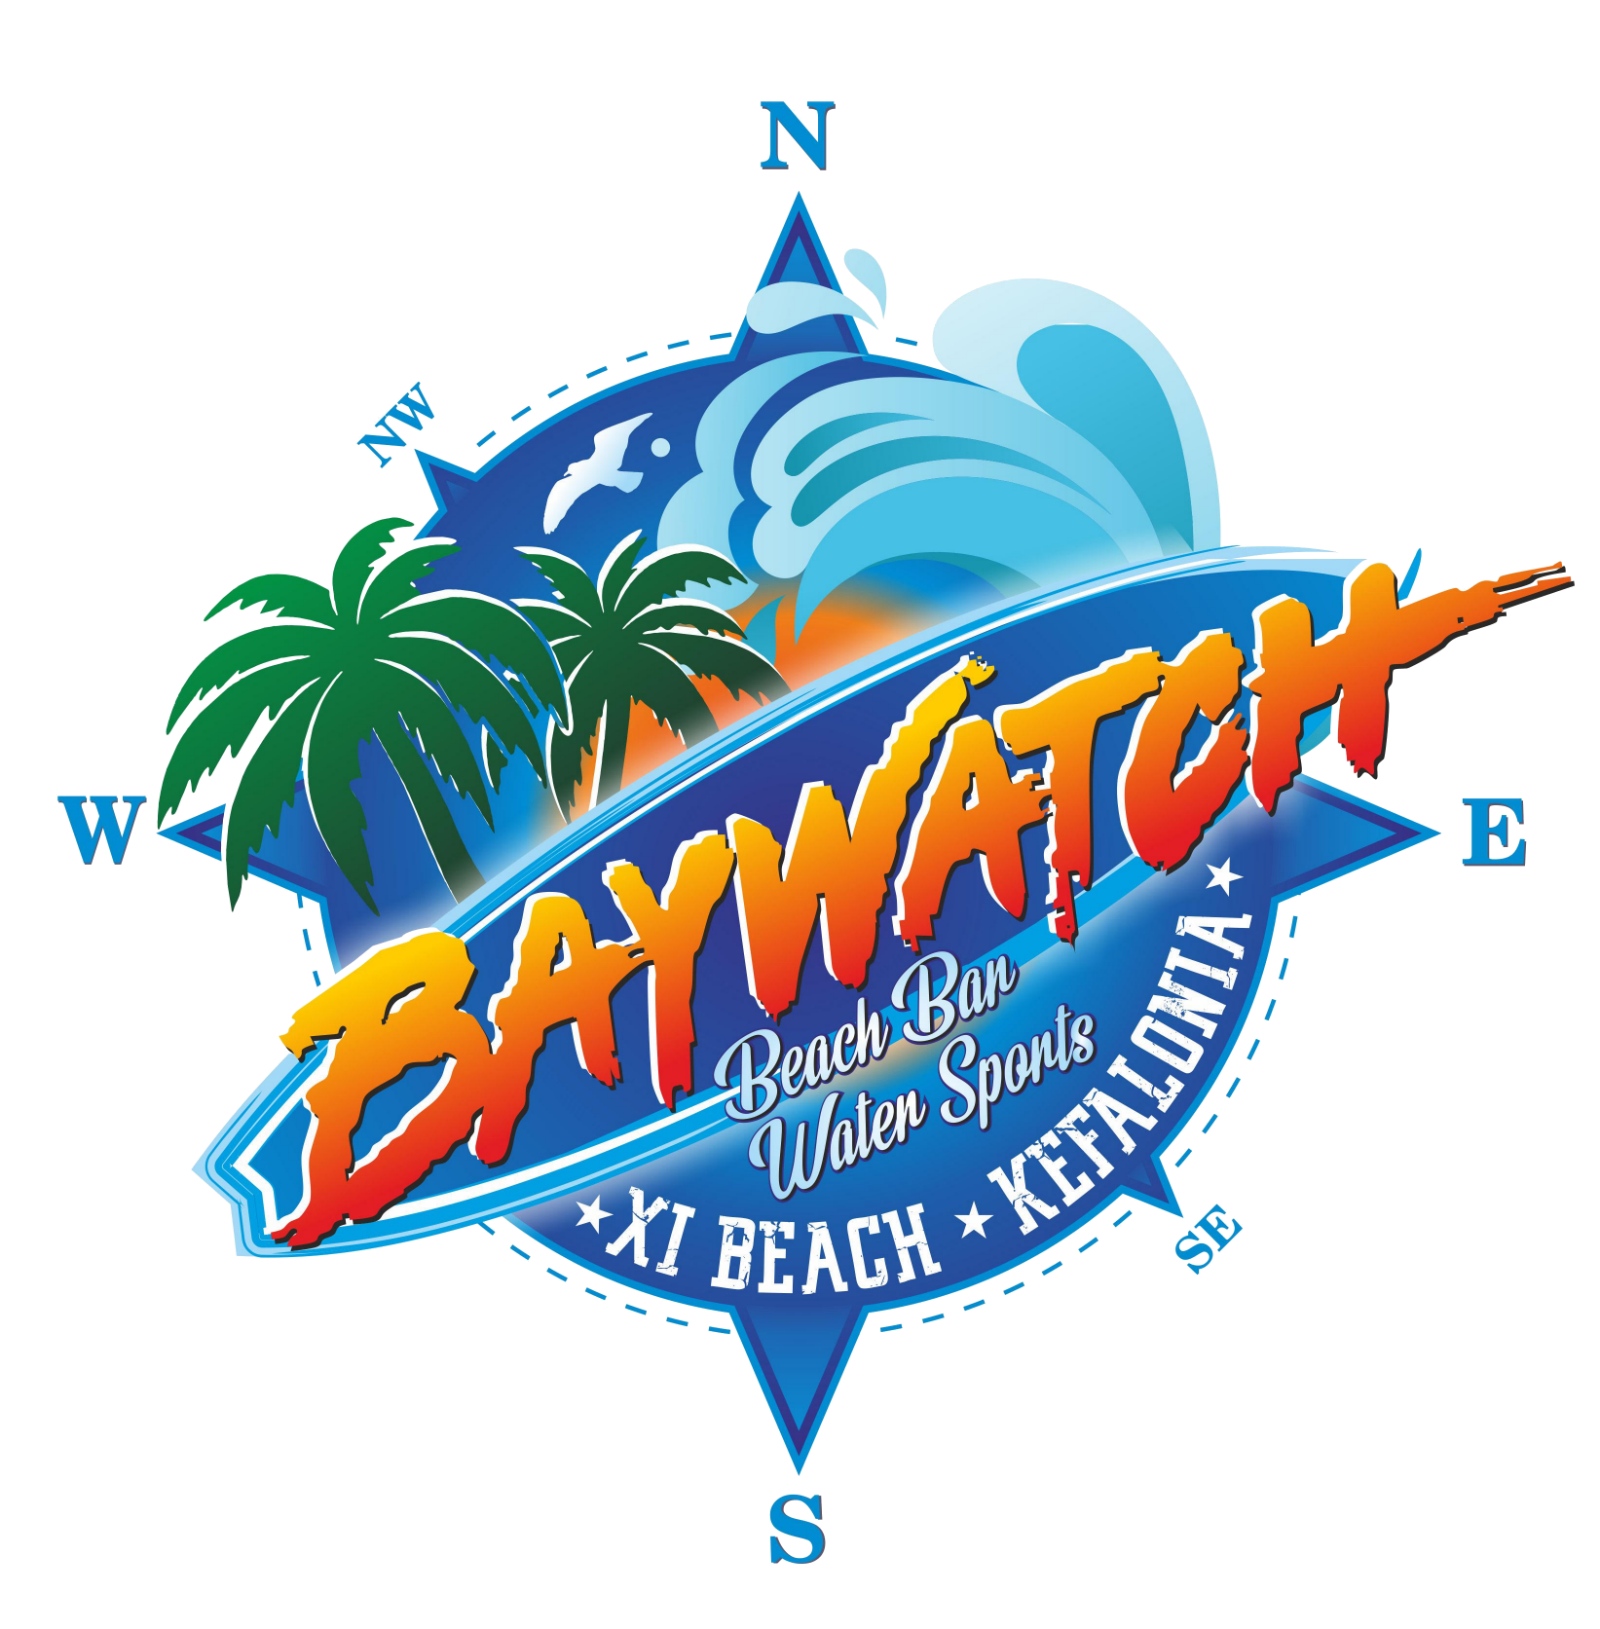 Baywatch Beach Bar & Watersports